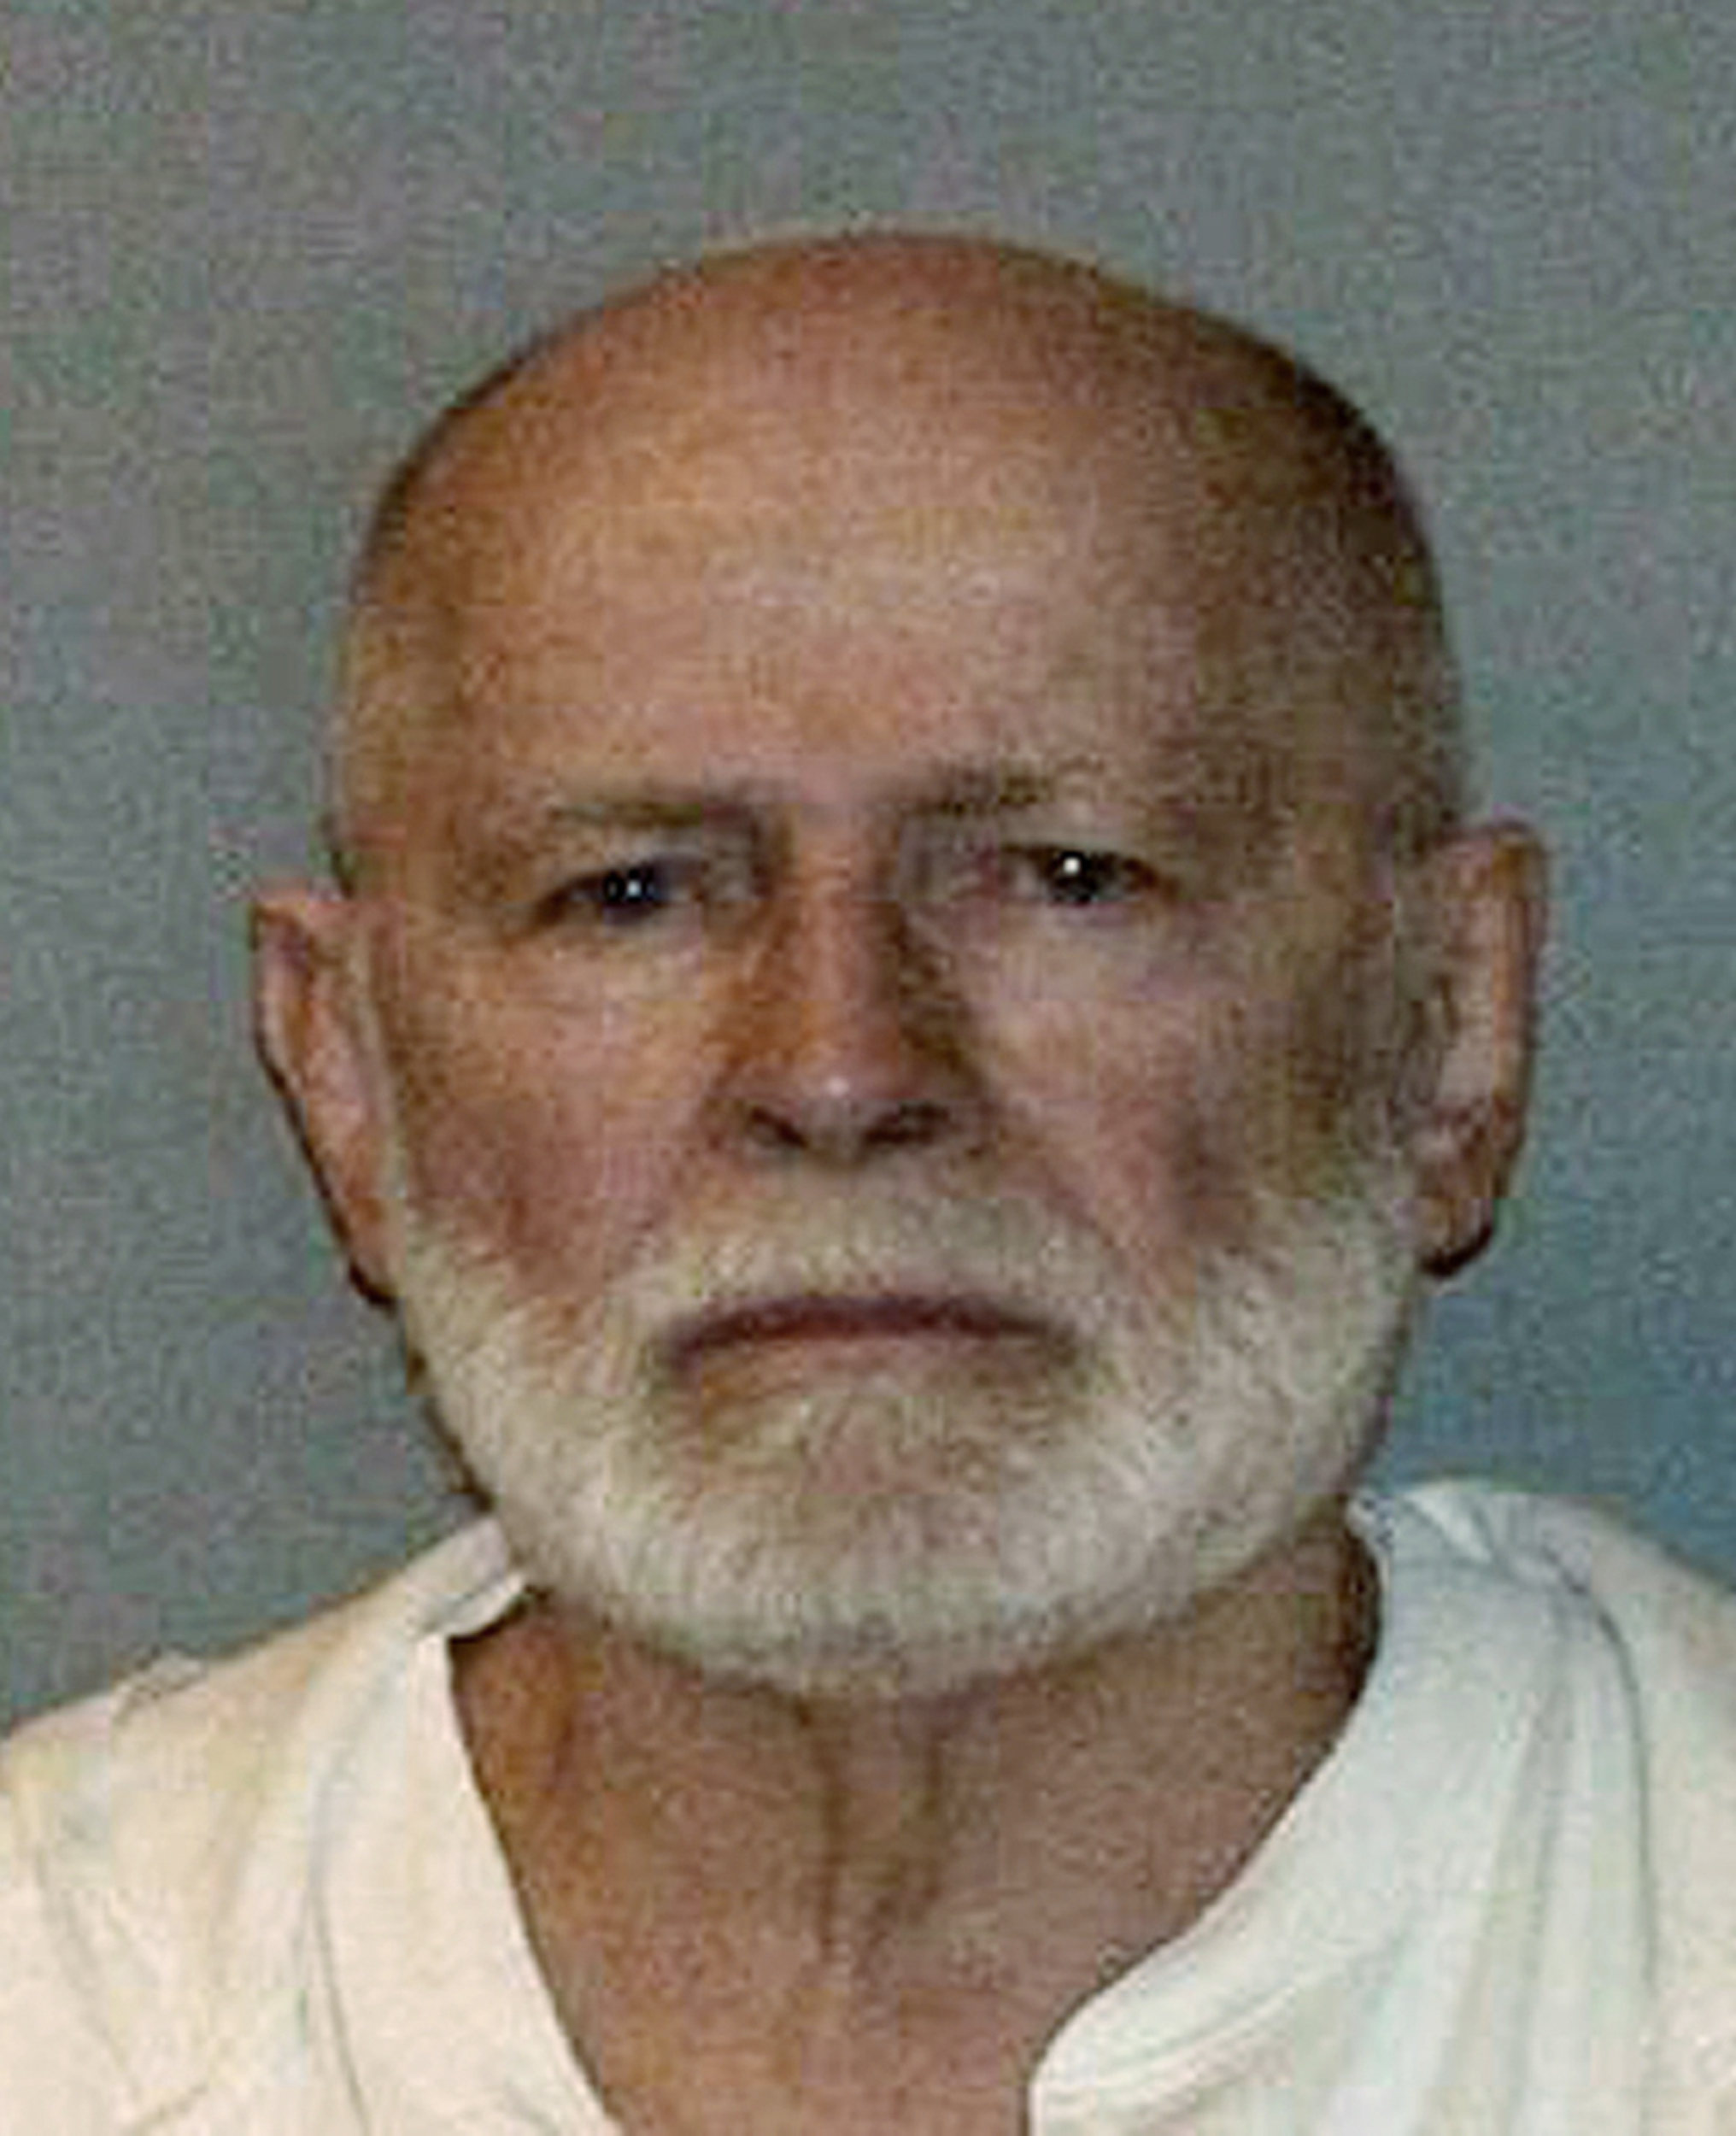 Whitey Bulger's lawyer says he will sue over prison killing